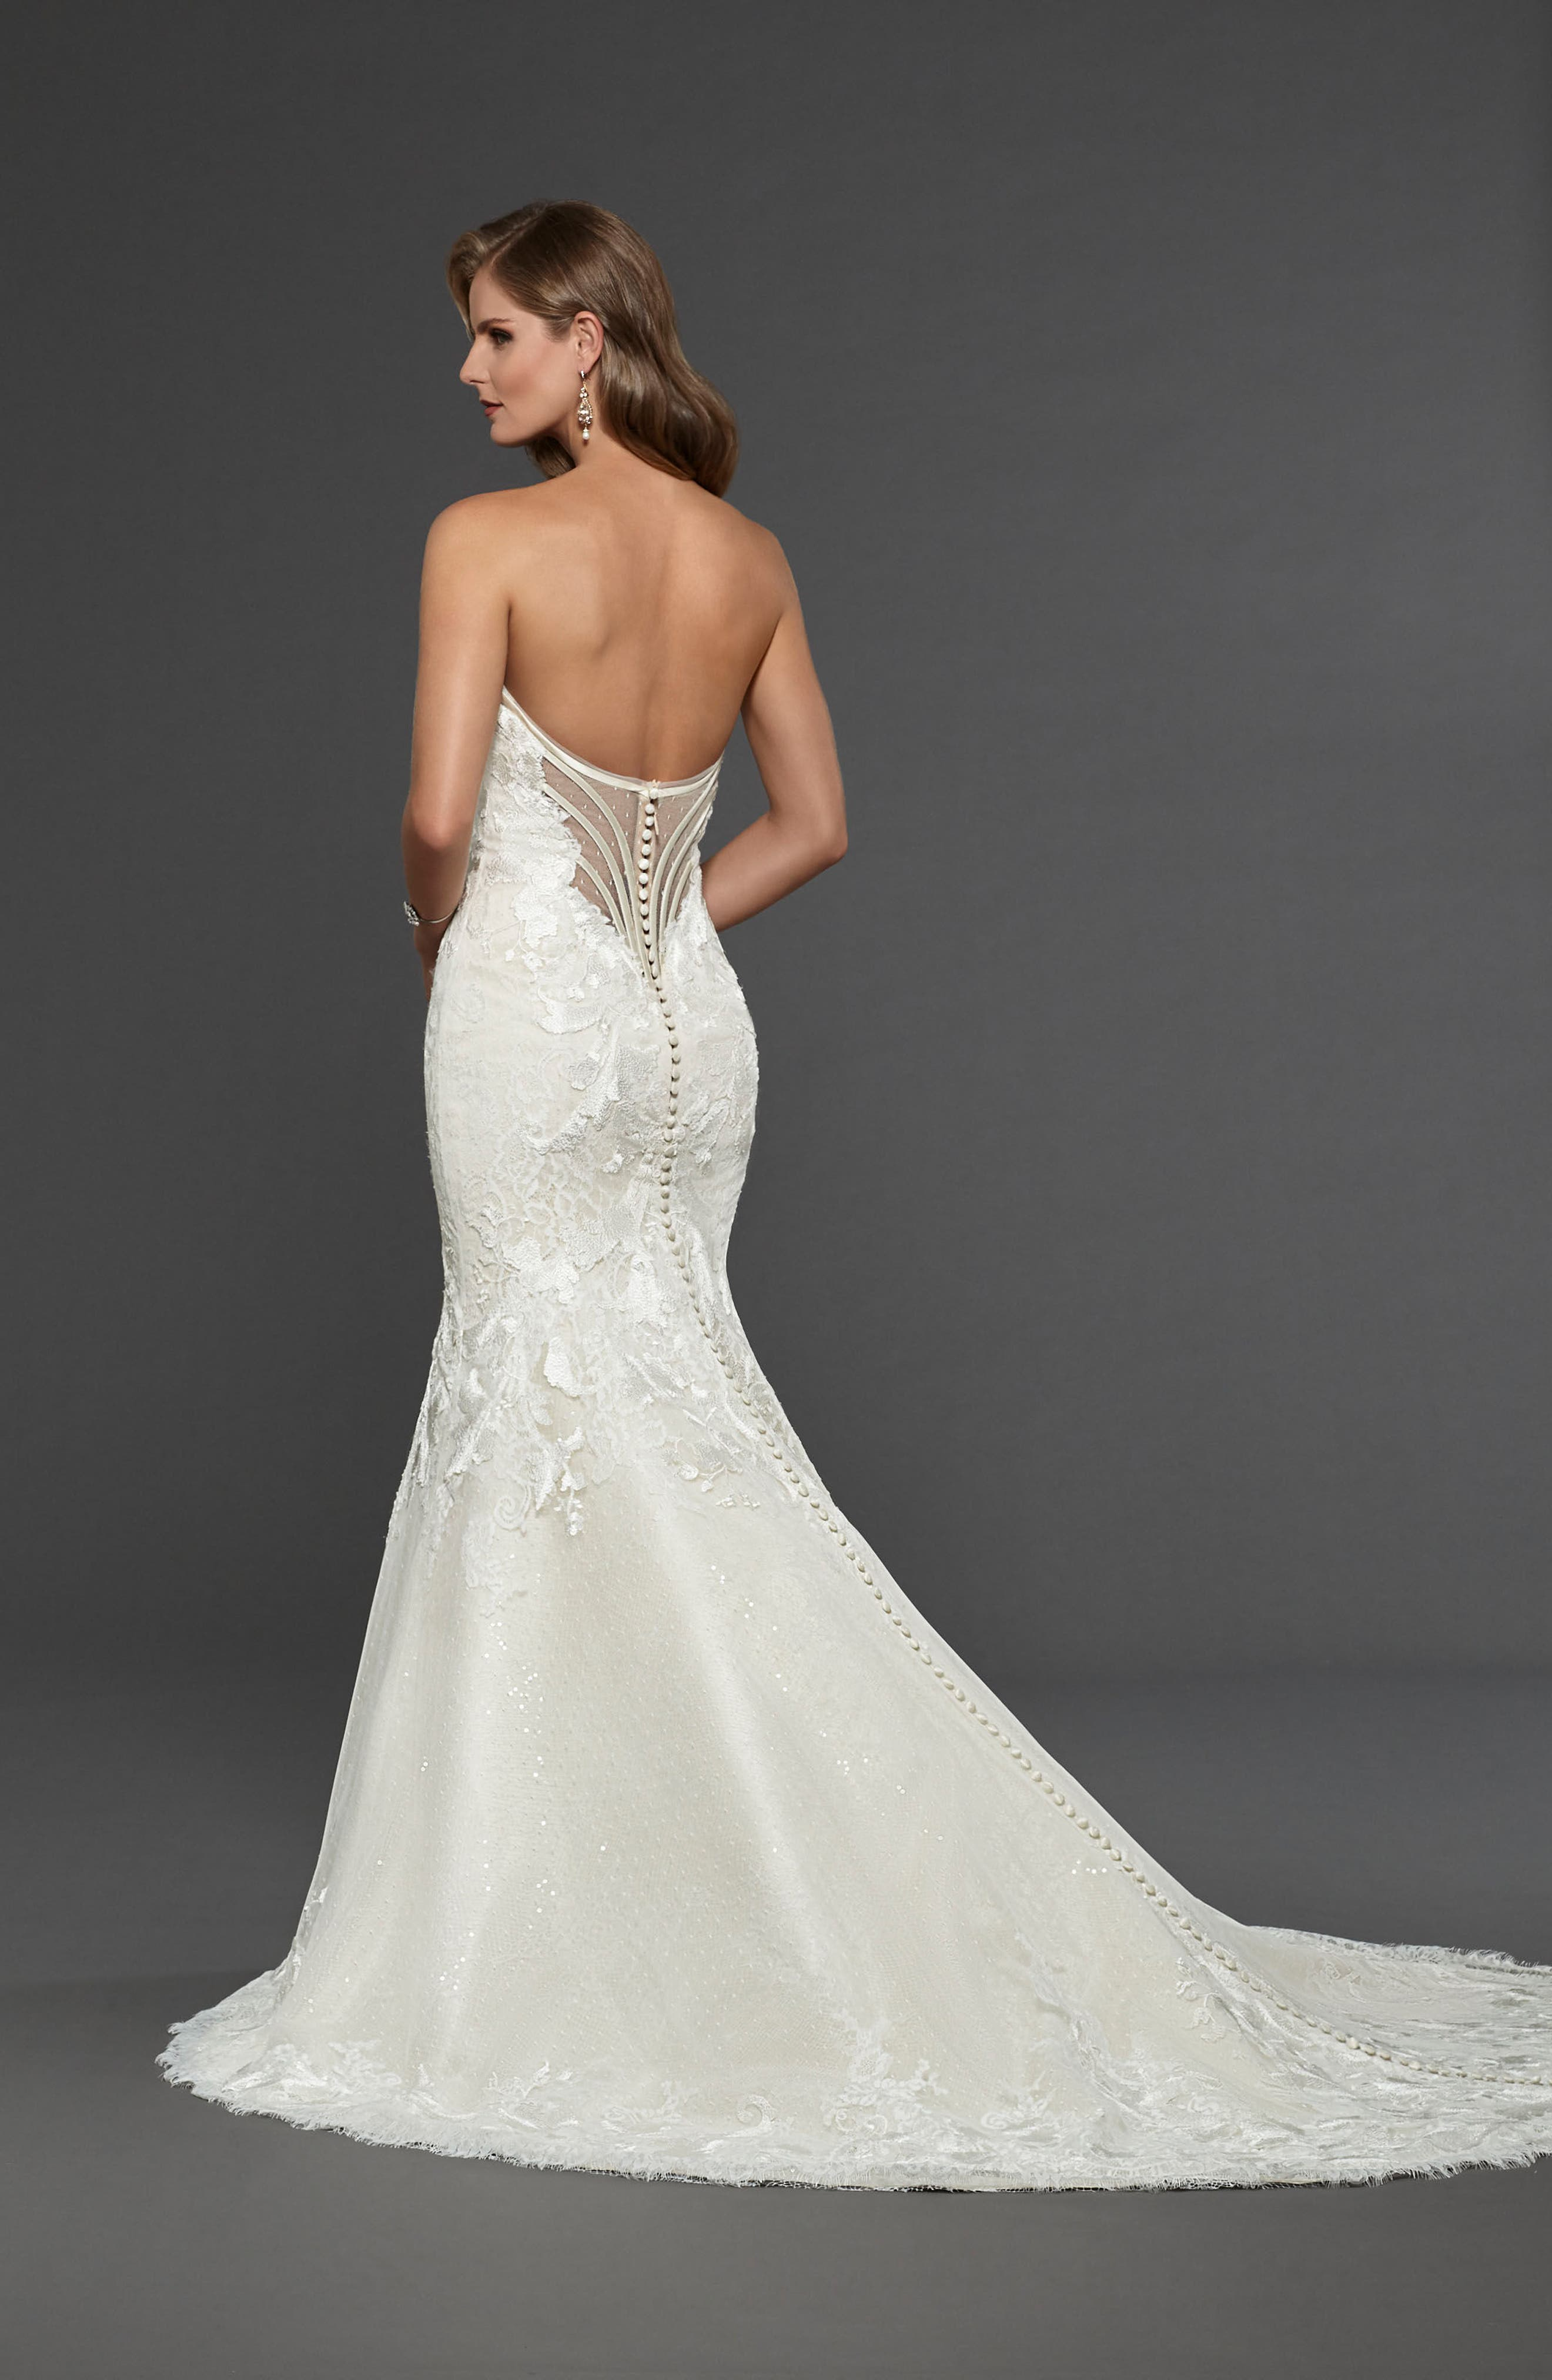 Claire Strapless Sweetheart Trumpet Gown,                             Alternate thumbnail 2, color,                             900